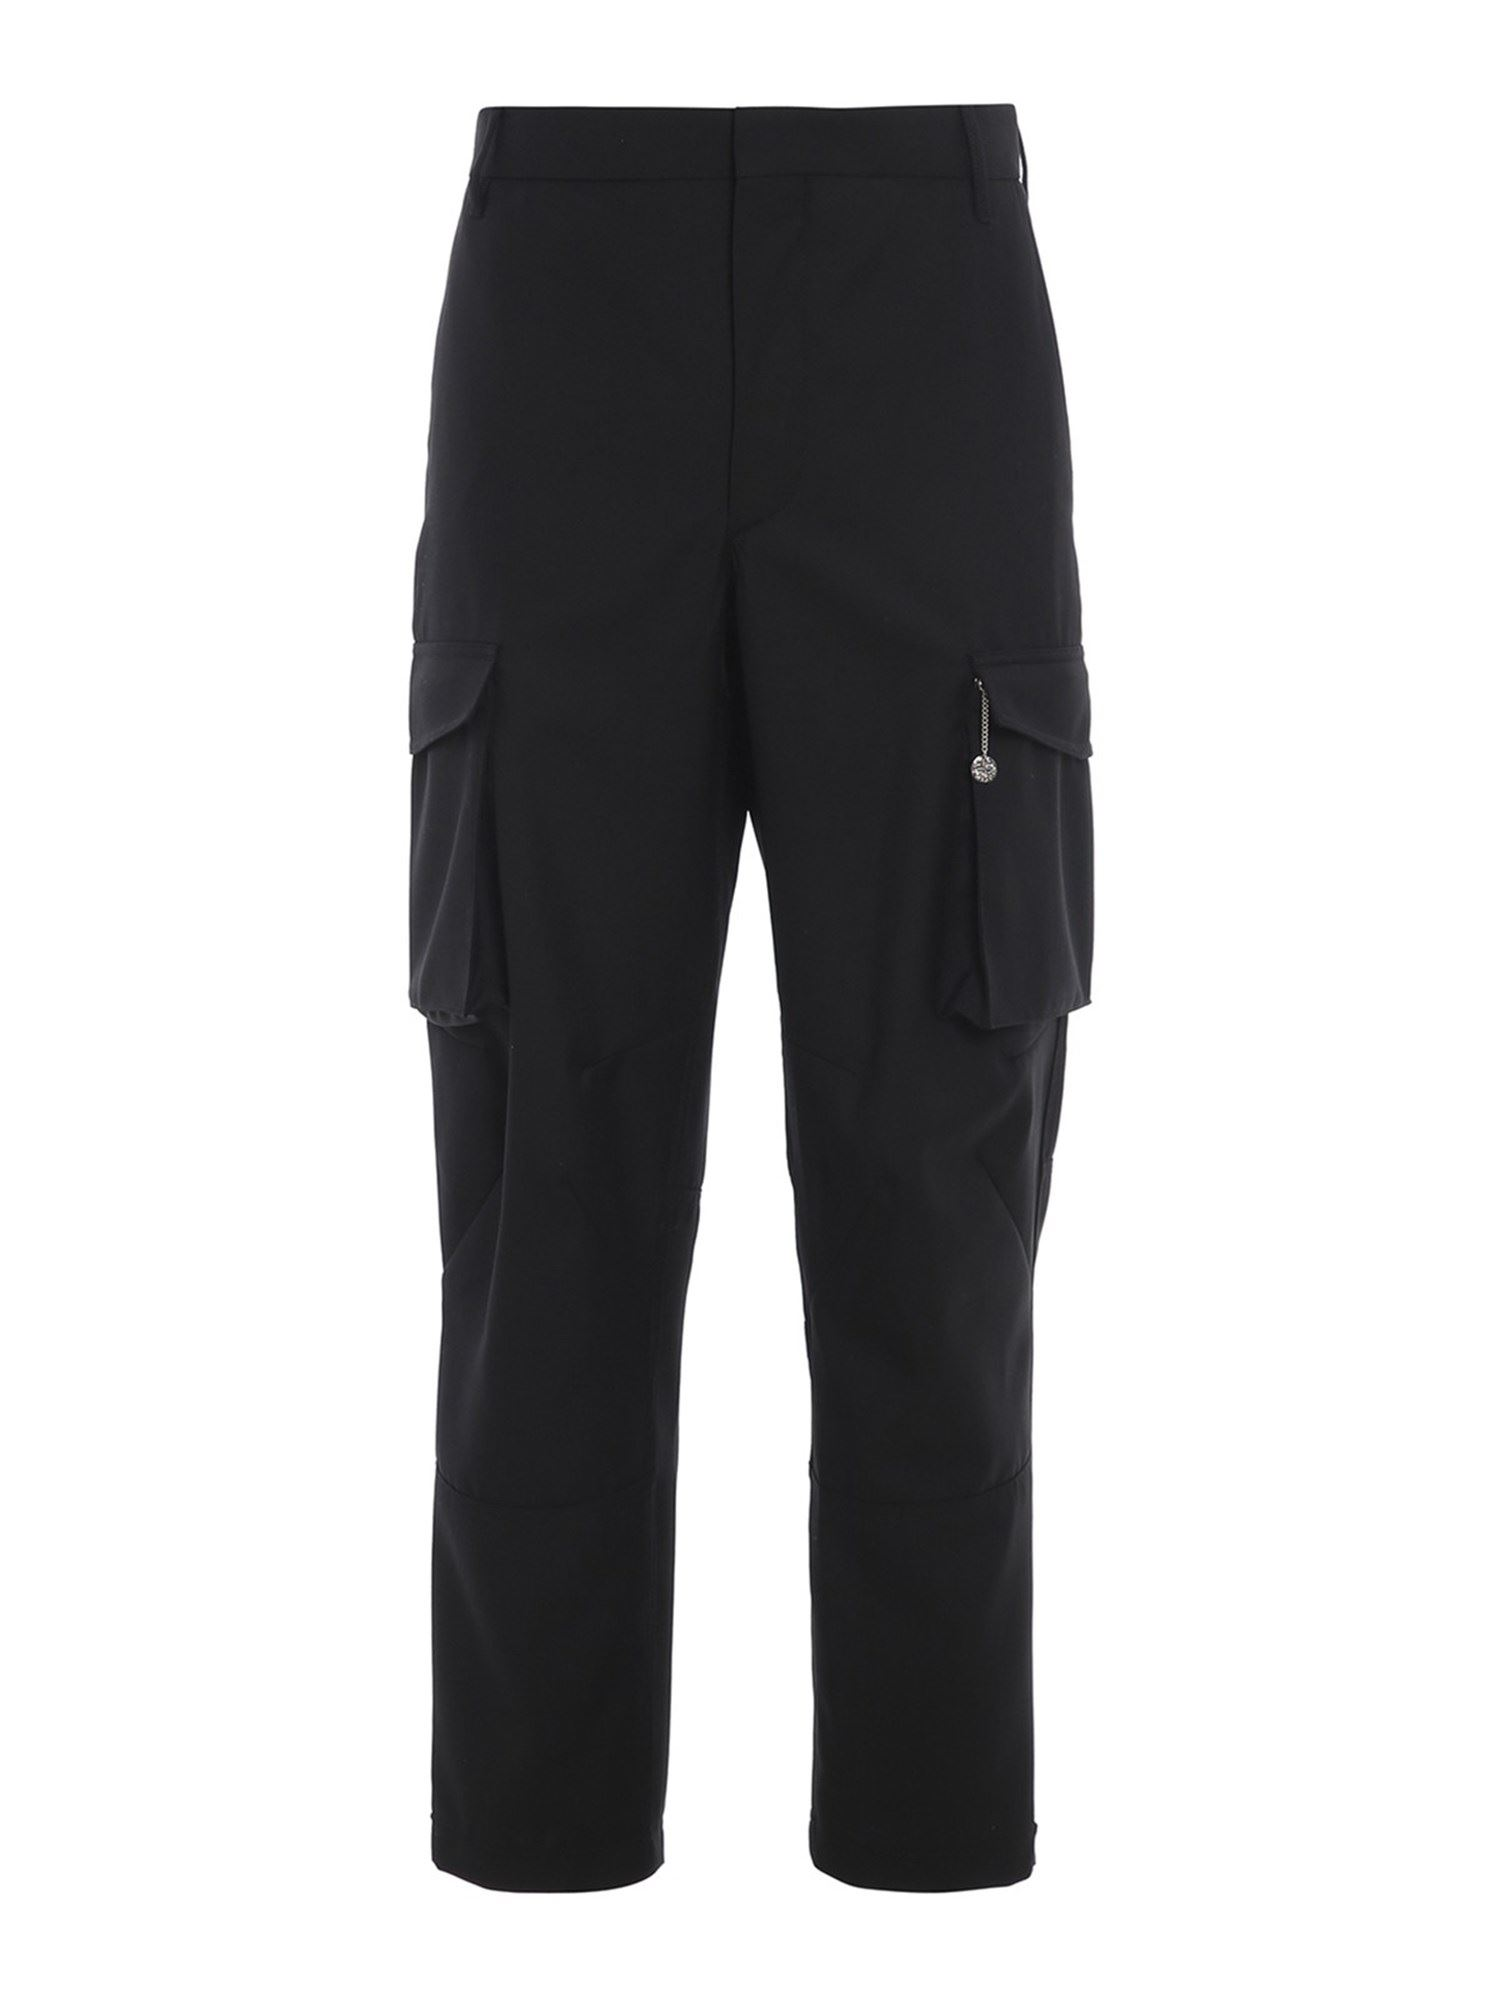 GIVENCHY WOOL TWILL TROUSERS IN BLACK